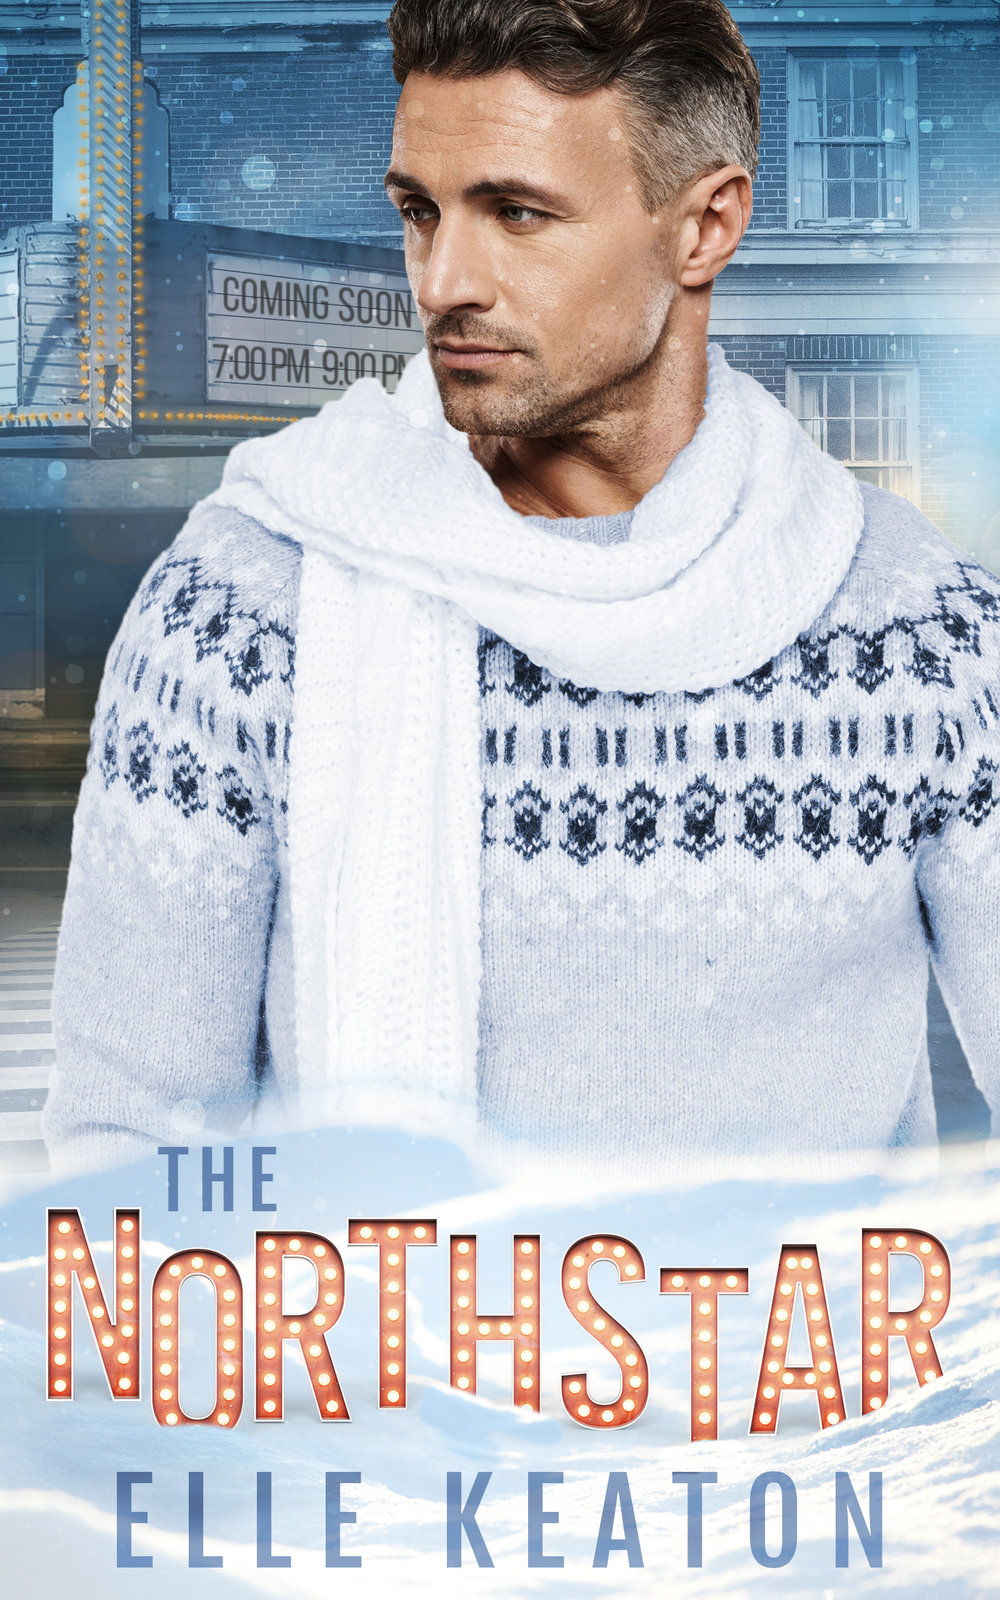 The NorthStar - The holiday season can't be over soon enough for John Hall. His ex-boyfriend emptied the bank accounts and ran off with his personal trainer months earlier leaving John unable to pay his creditors. Now he's forced to close the independent movie theater he runs, a bad end to a bad year. Gay and single, closer to fifty than forty, John doesn't see a lot of hope in his future. In the dark of night he wonders if staying afloat is worth the effort.Chance Allsop made a promise to his dying mother he hopes he doesn't regret. Ten months after her death he's finally in Skagit, Washington, visiting the old movie theater where his parents met and fell in love decades ago. The whole thing seems like a lark until he lays eyes on the handsome owner, with his mother's spirit at his back Chance fully intends to win John Hall's heart.